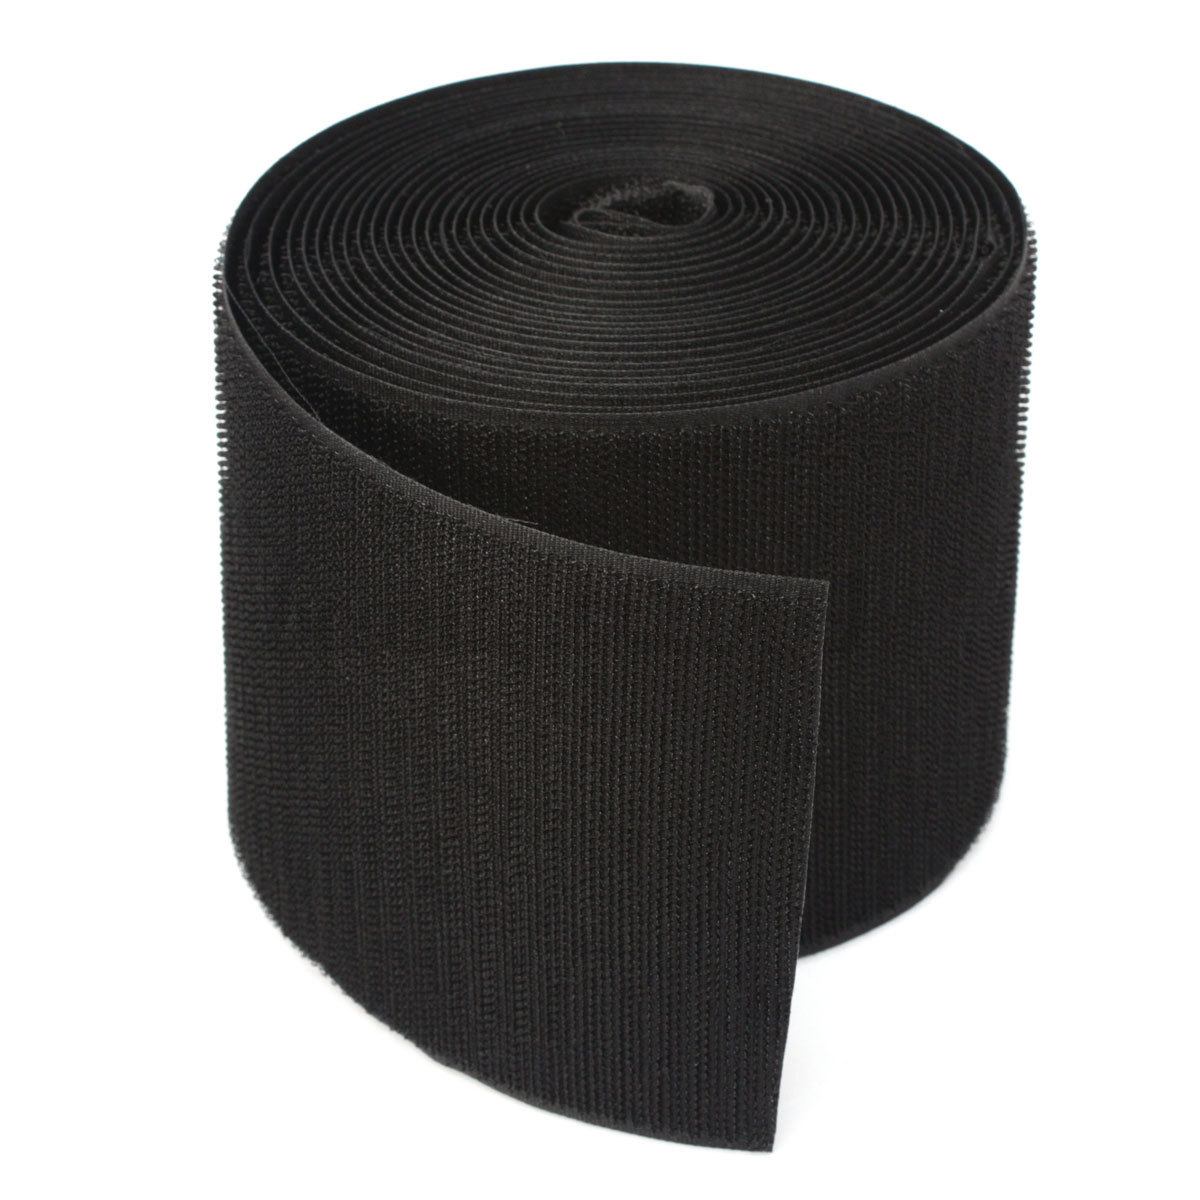 black cable cover for carpet nylon wire cloth glue 5m length 100mm width ebay. Black Bedroom Furniture Sets. Home Design Ideas